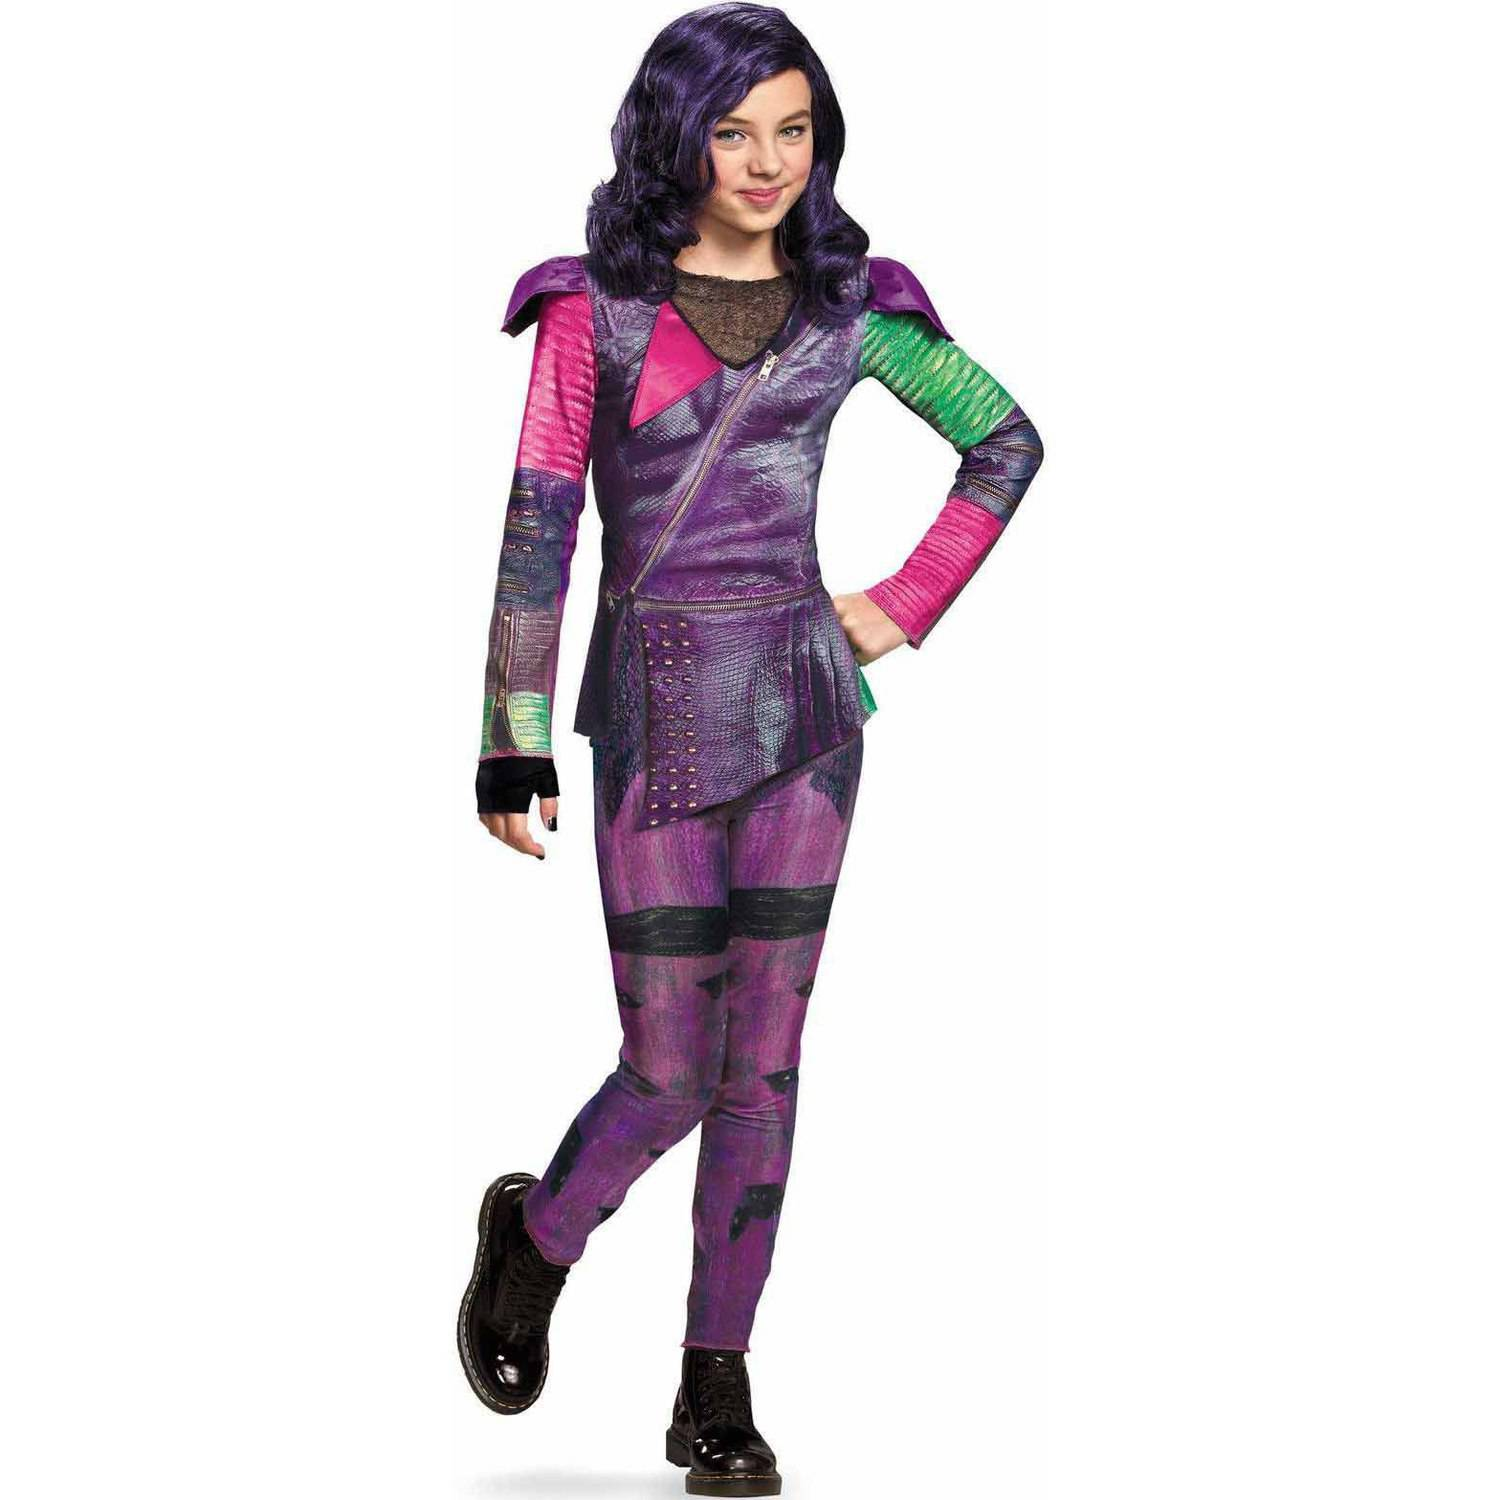 Disney The Descendants Mal Isle of the Lost Classic Child Halloween Costume